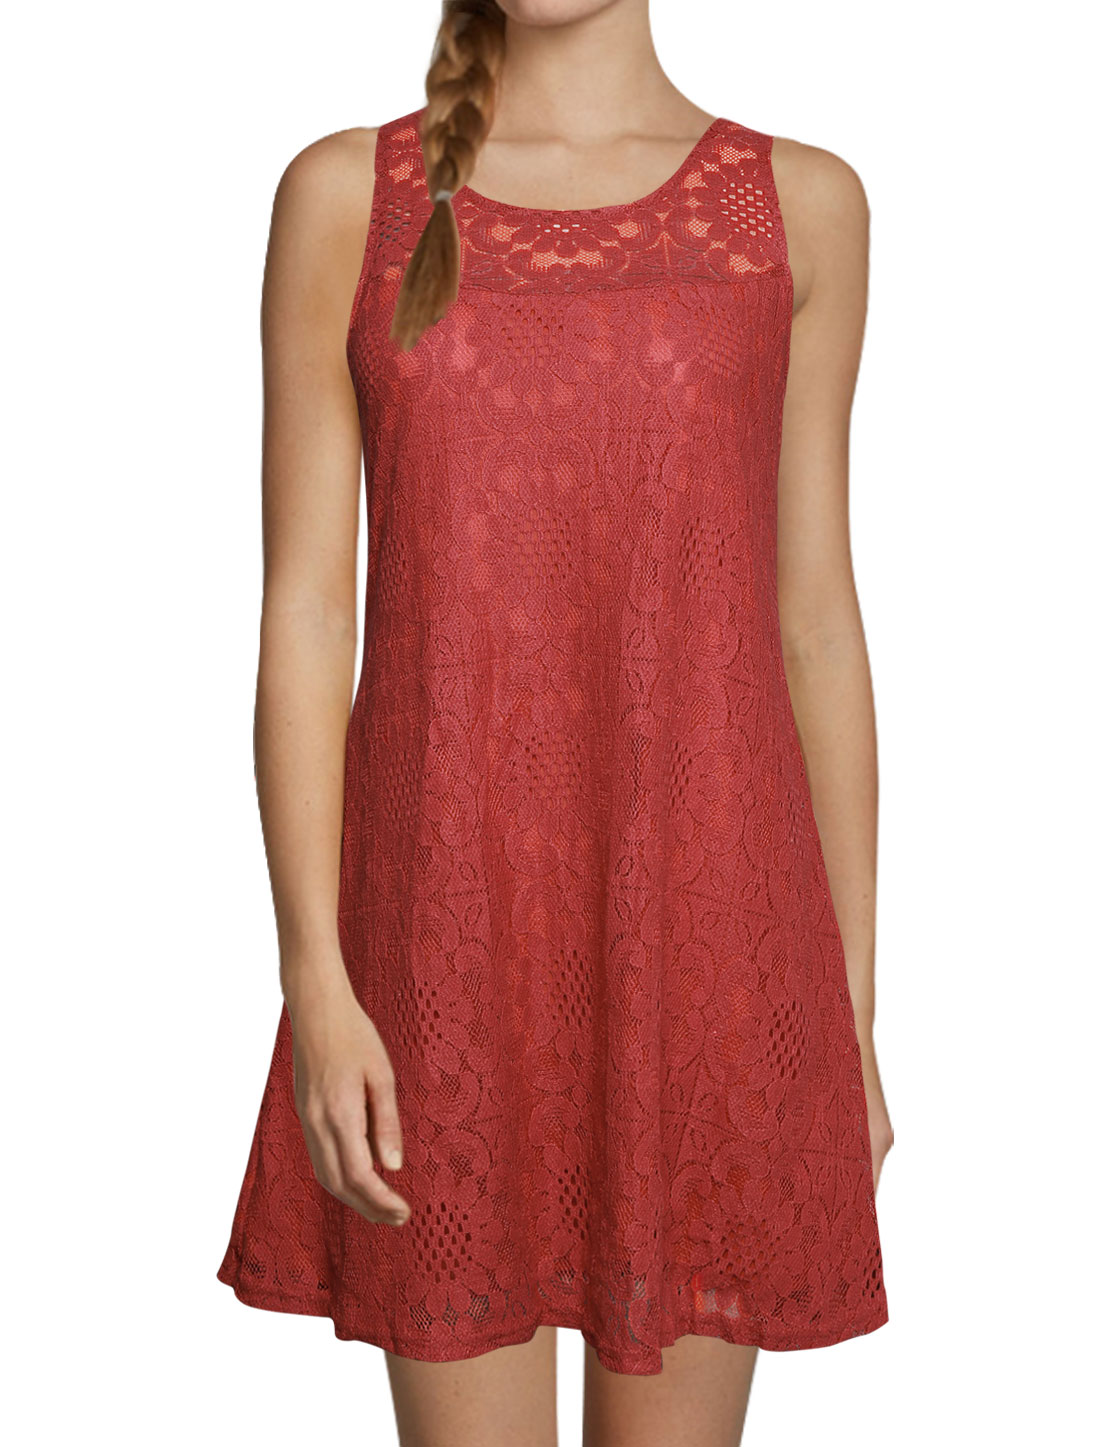 Women Round Neck Sleeveless Cut Out Back Lace Tunic Dress Red S